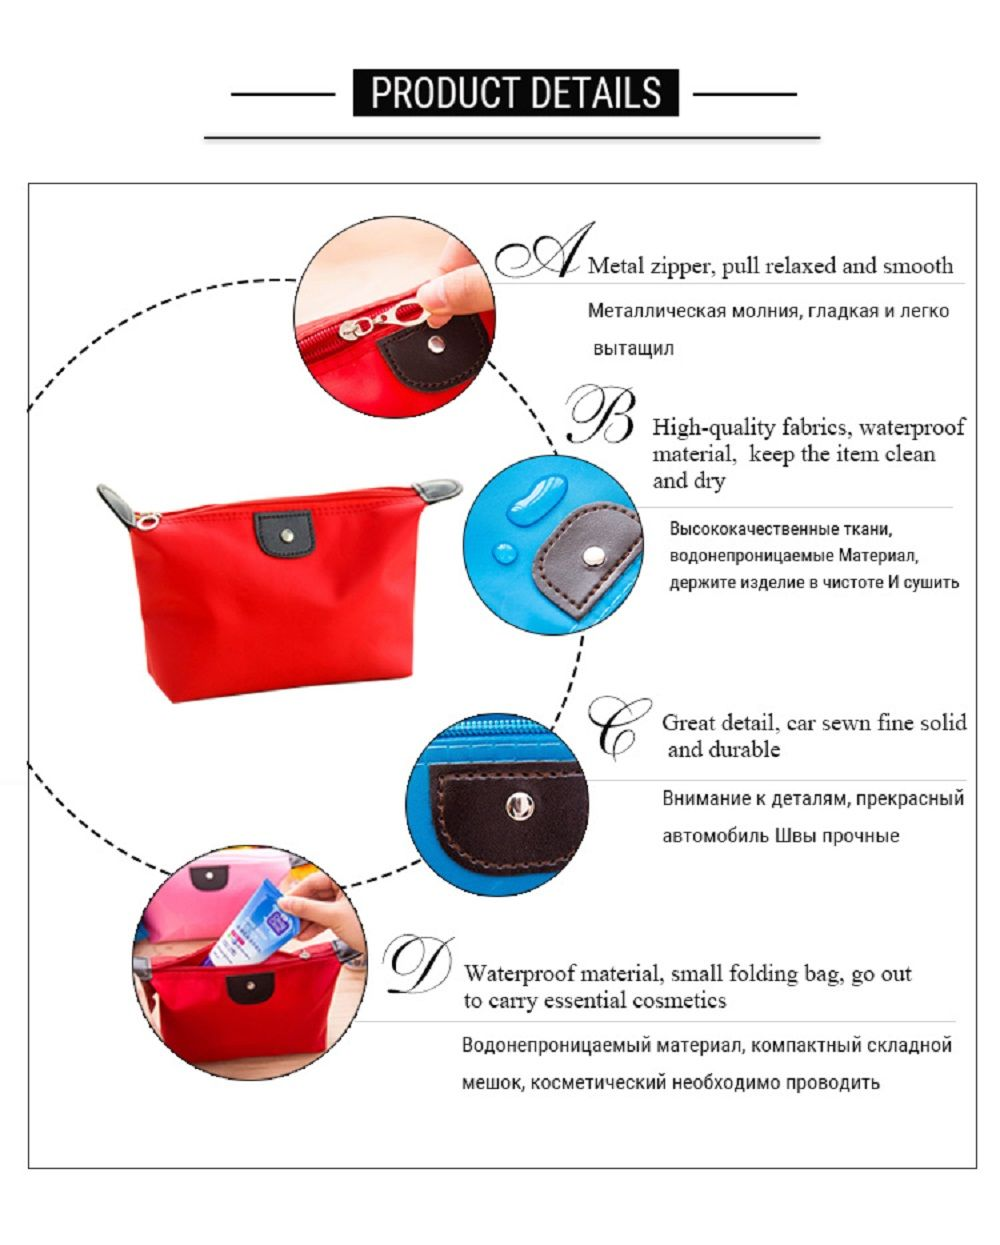 Makeup Organizer Travel Bag Women Cosmetic Bags Summer Dumpling Clutch Women Packages Waterproof Cosmetic Bag Handbag